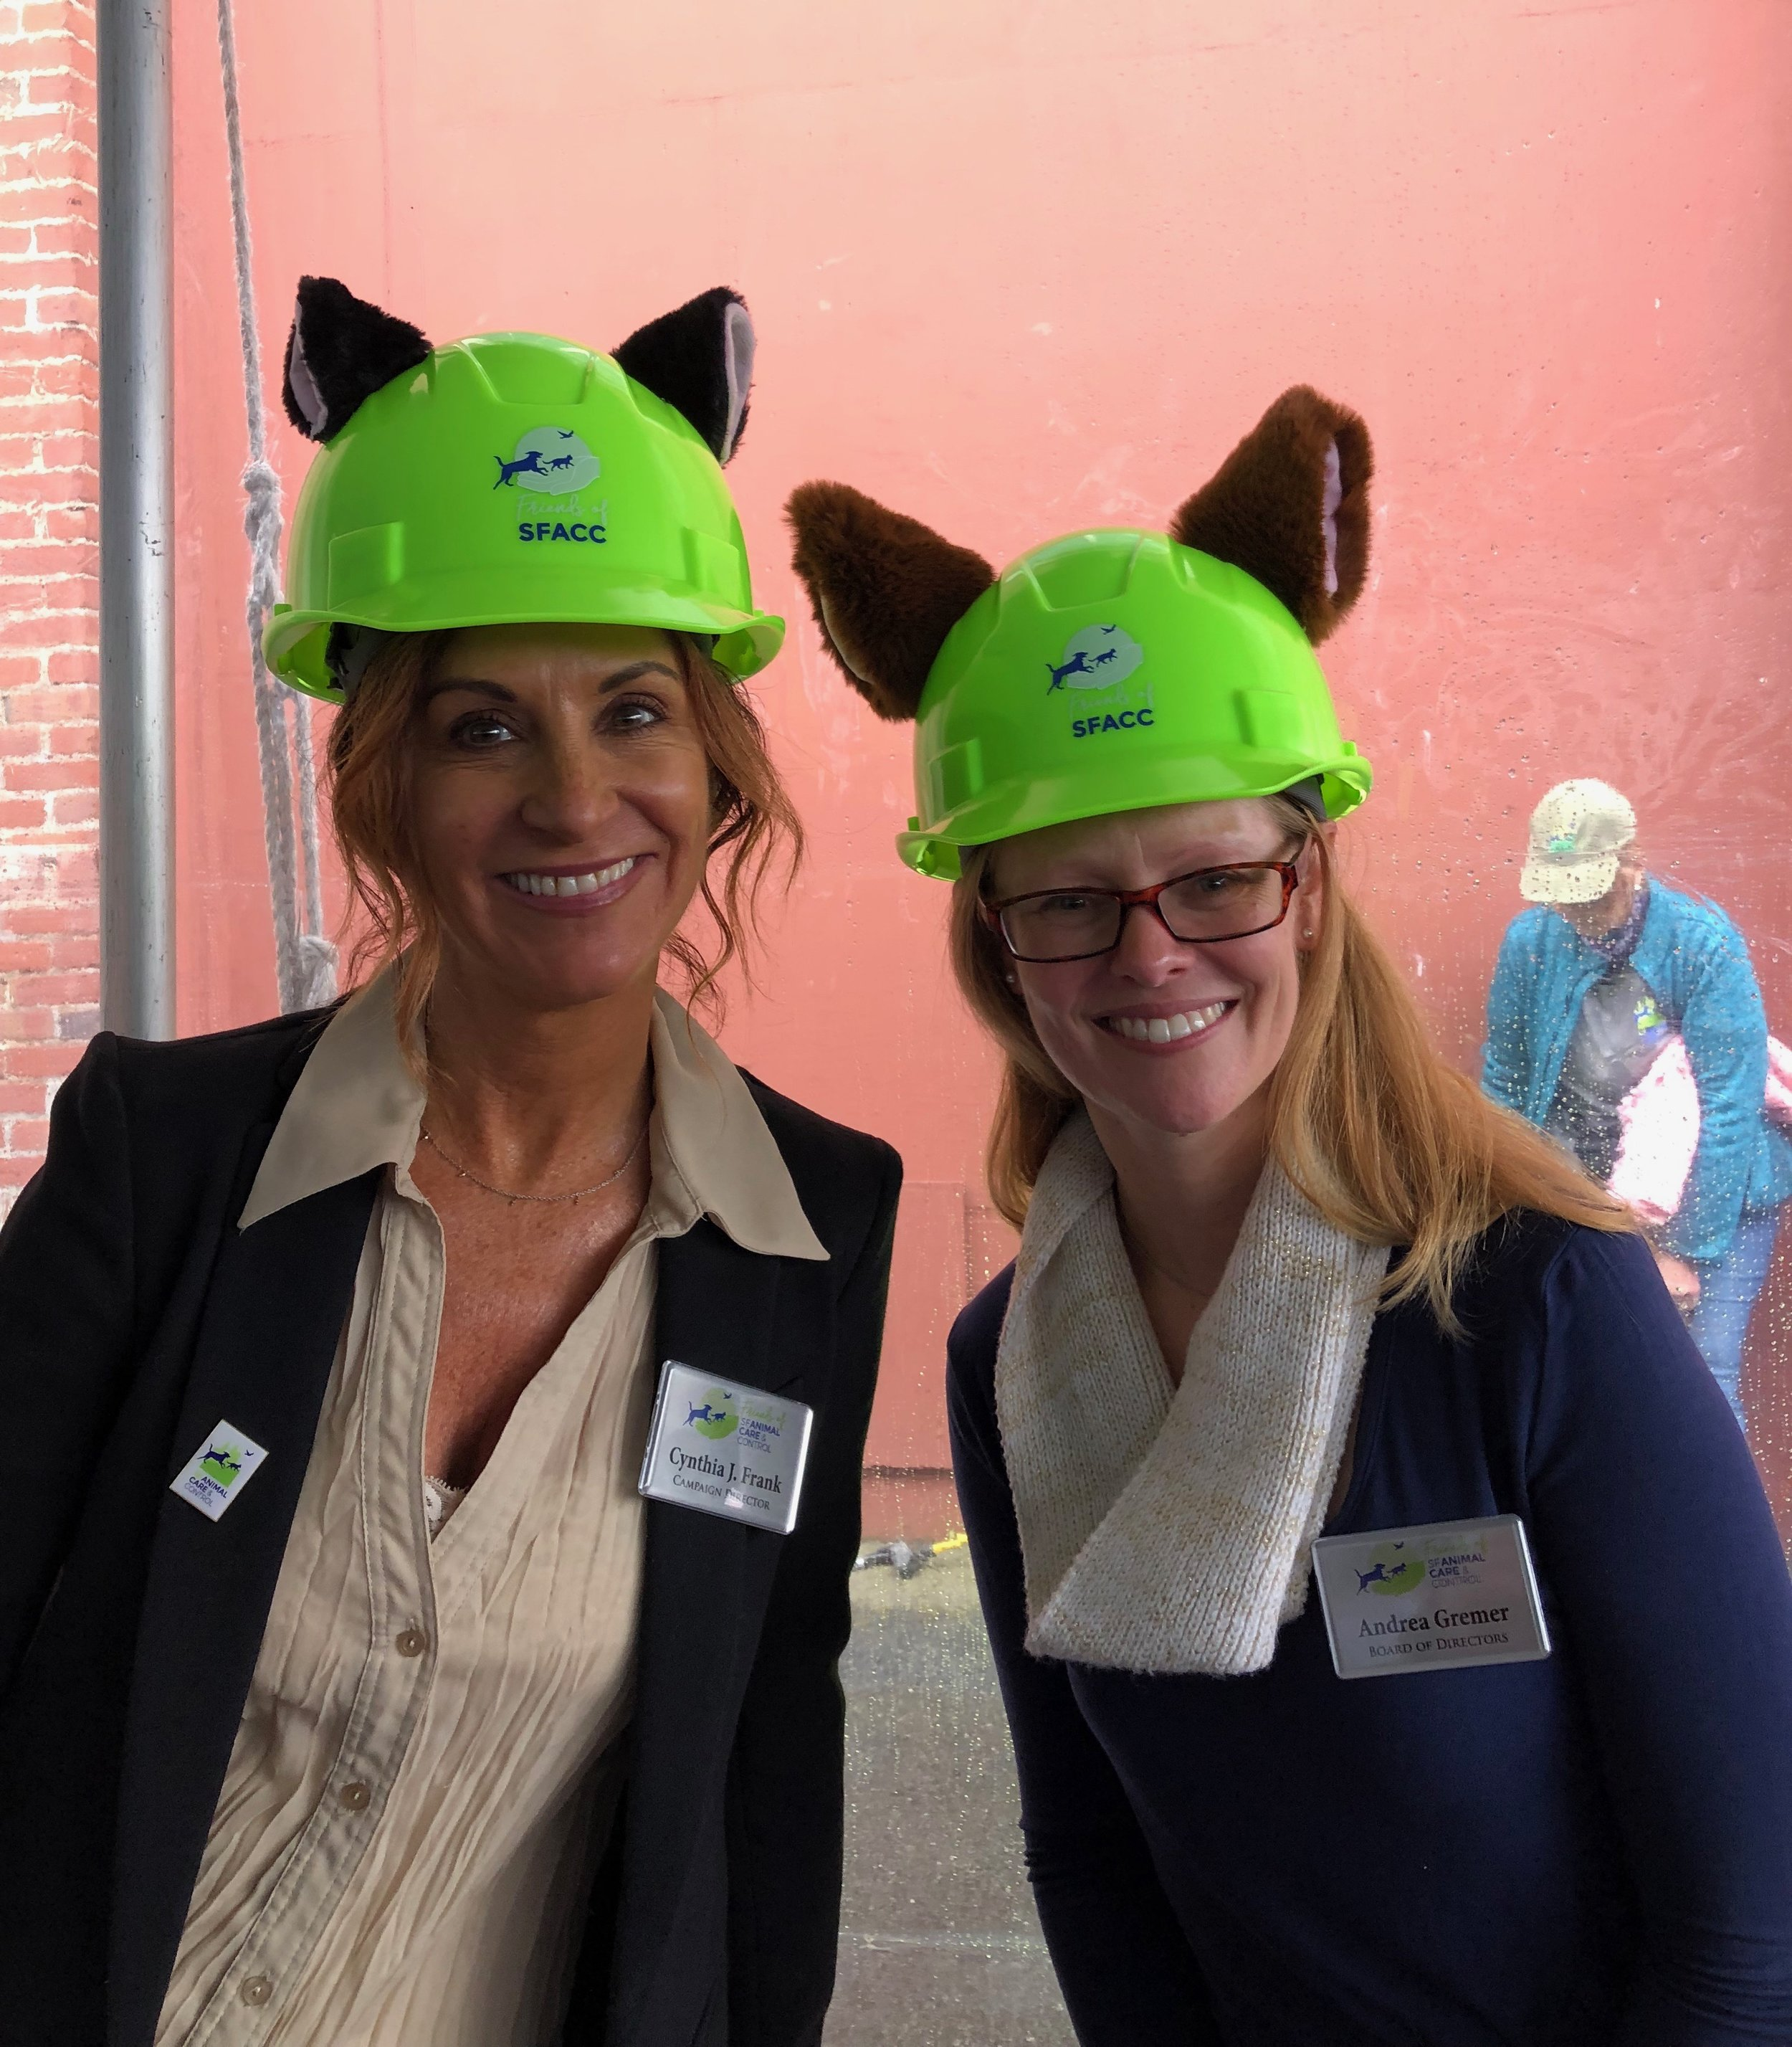 Campaign Director, Cynthia J. Frank and Board Member, Andrea Gremer are all ears.